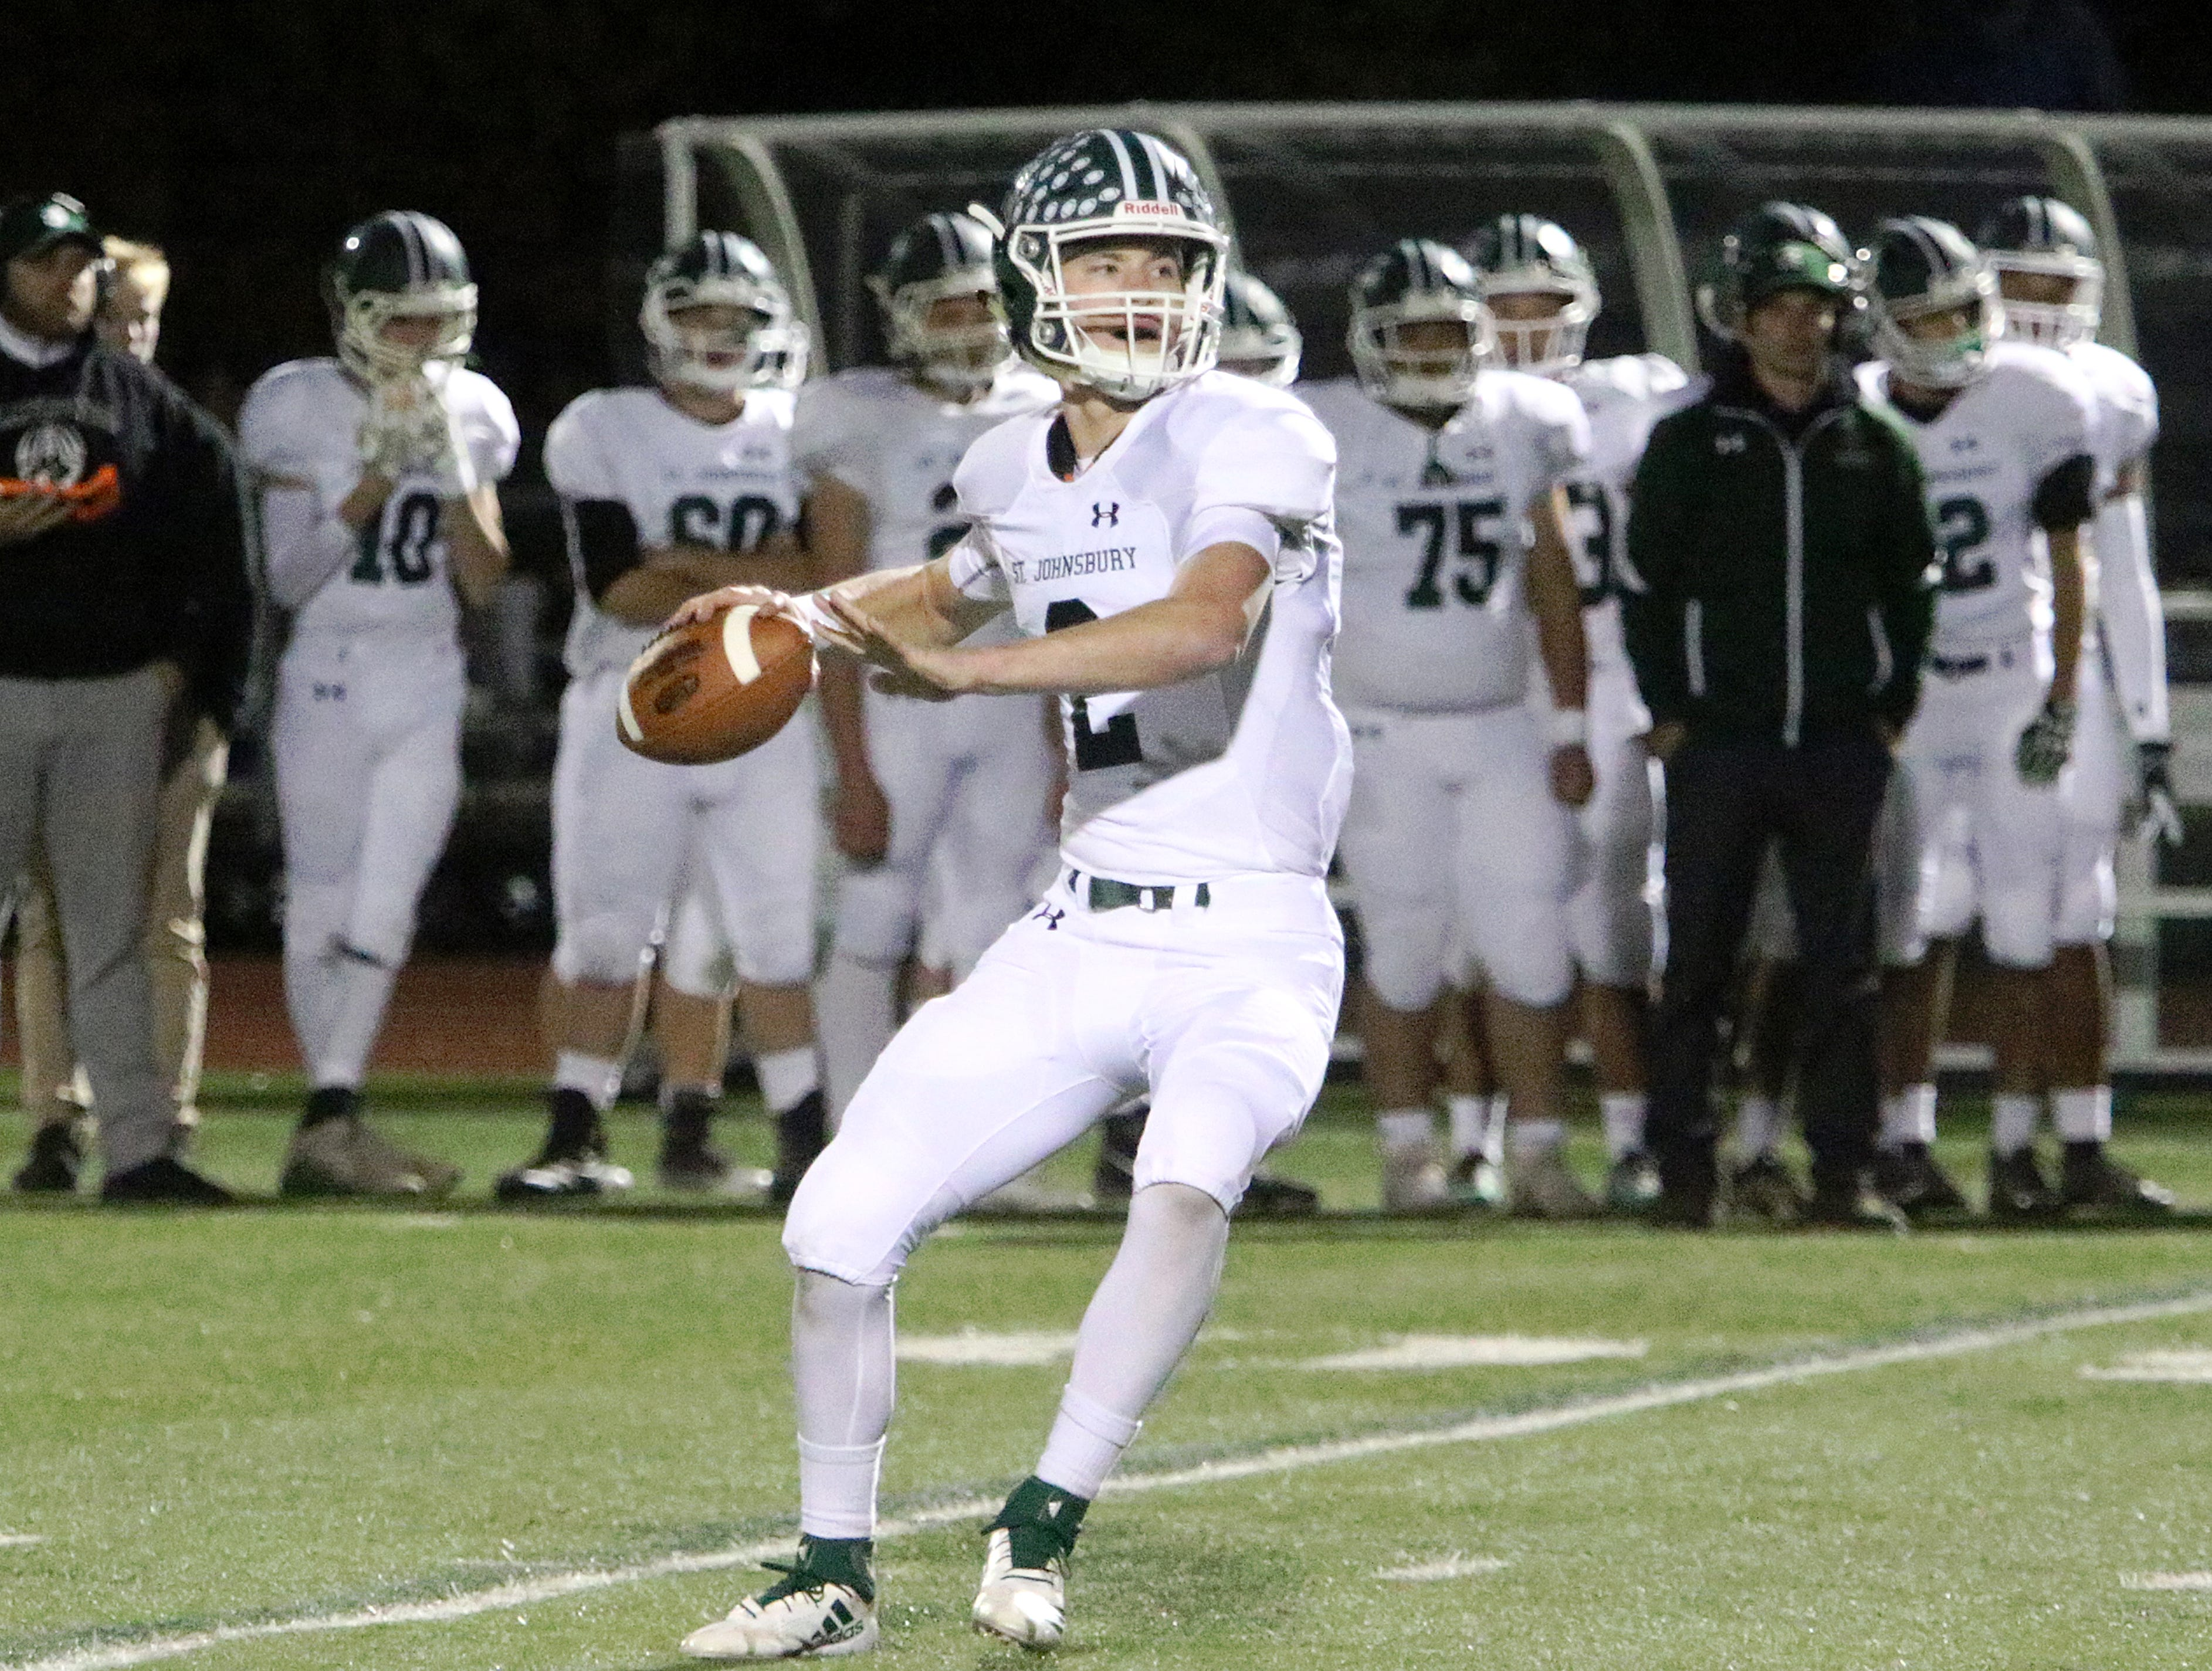 Vermont H.S. football: St. J's Cady named Gatorade player of the year